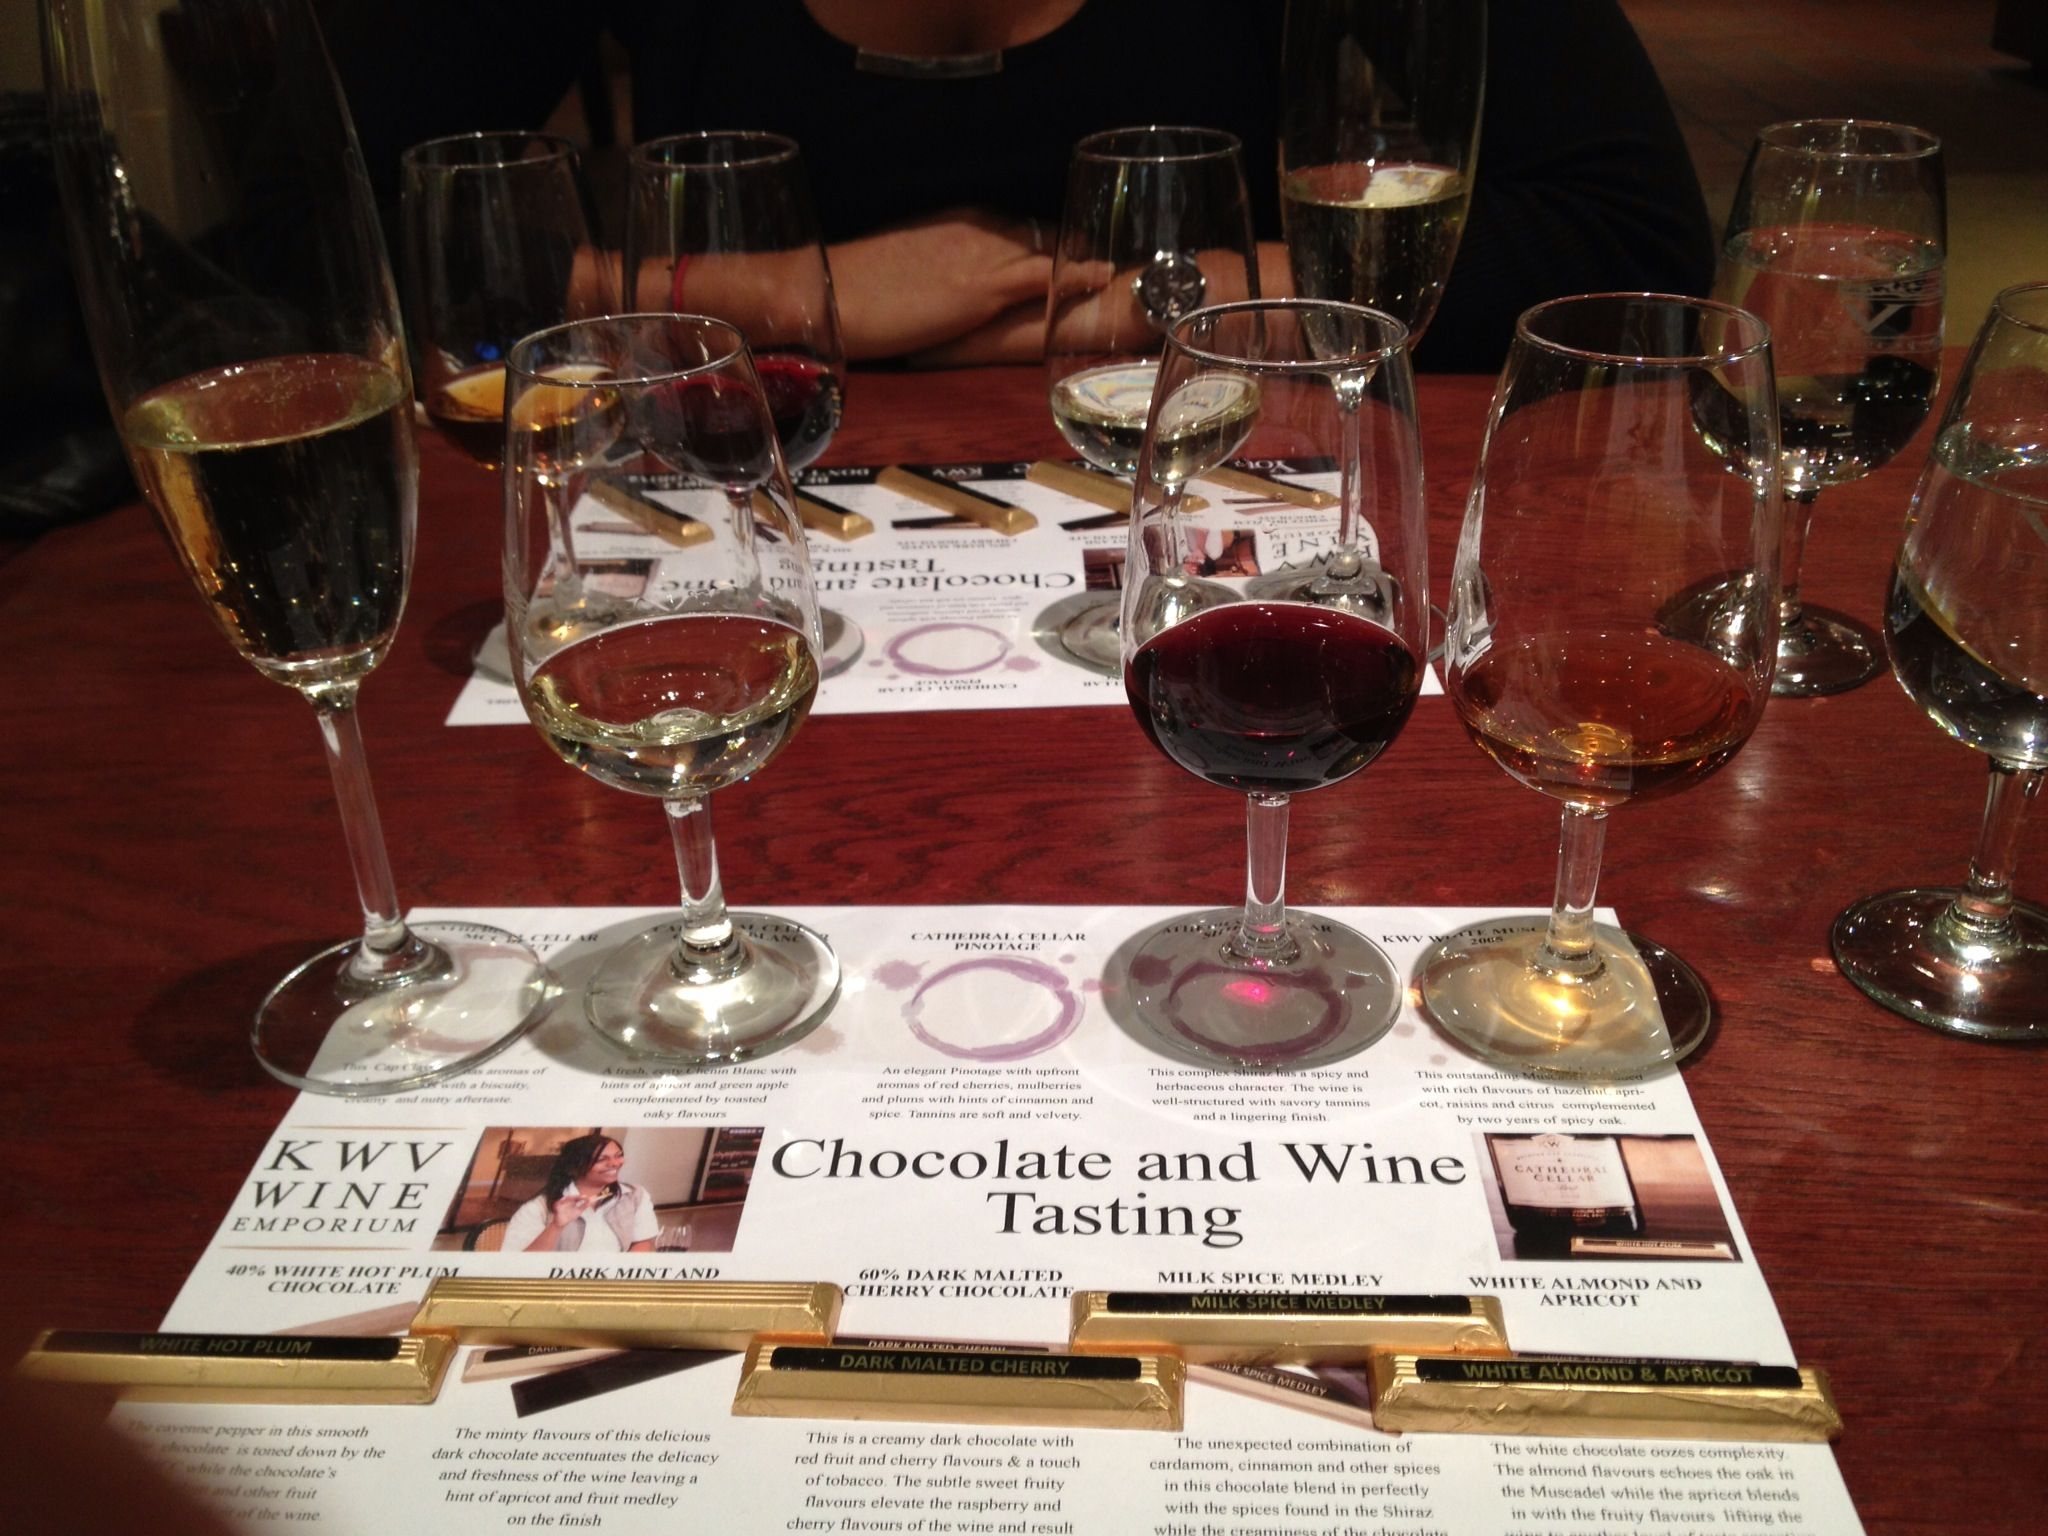 Kwv Paarl South Africa Wine And Chocolate Tasting South Africa Wine Wine Pairing Tasting